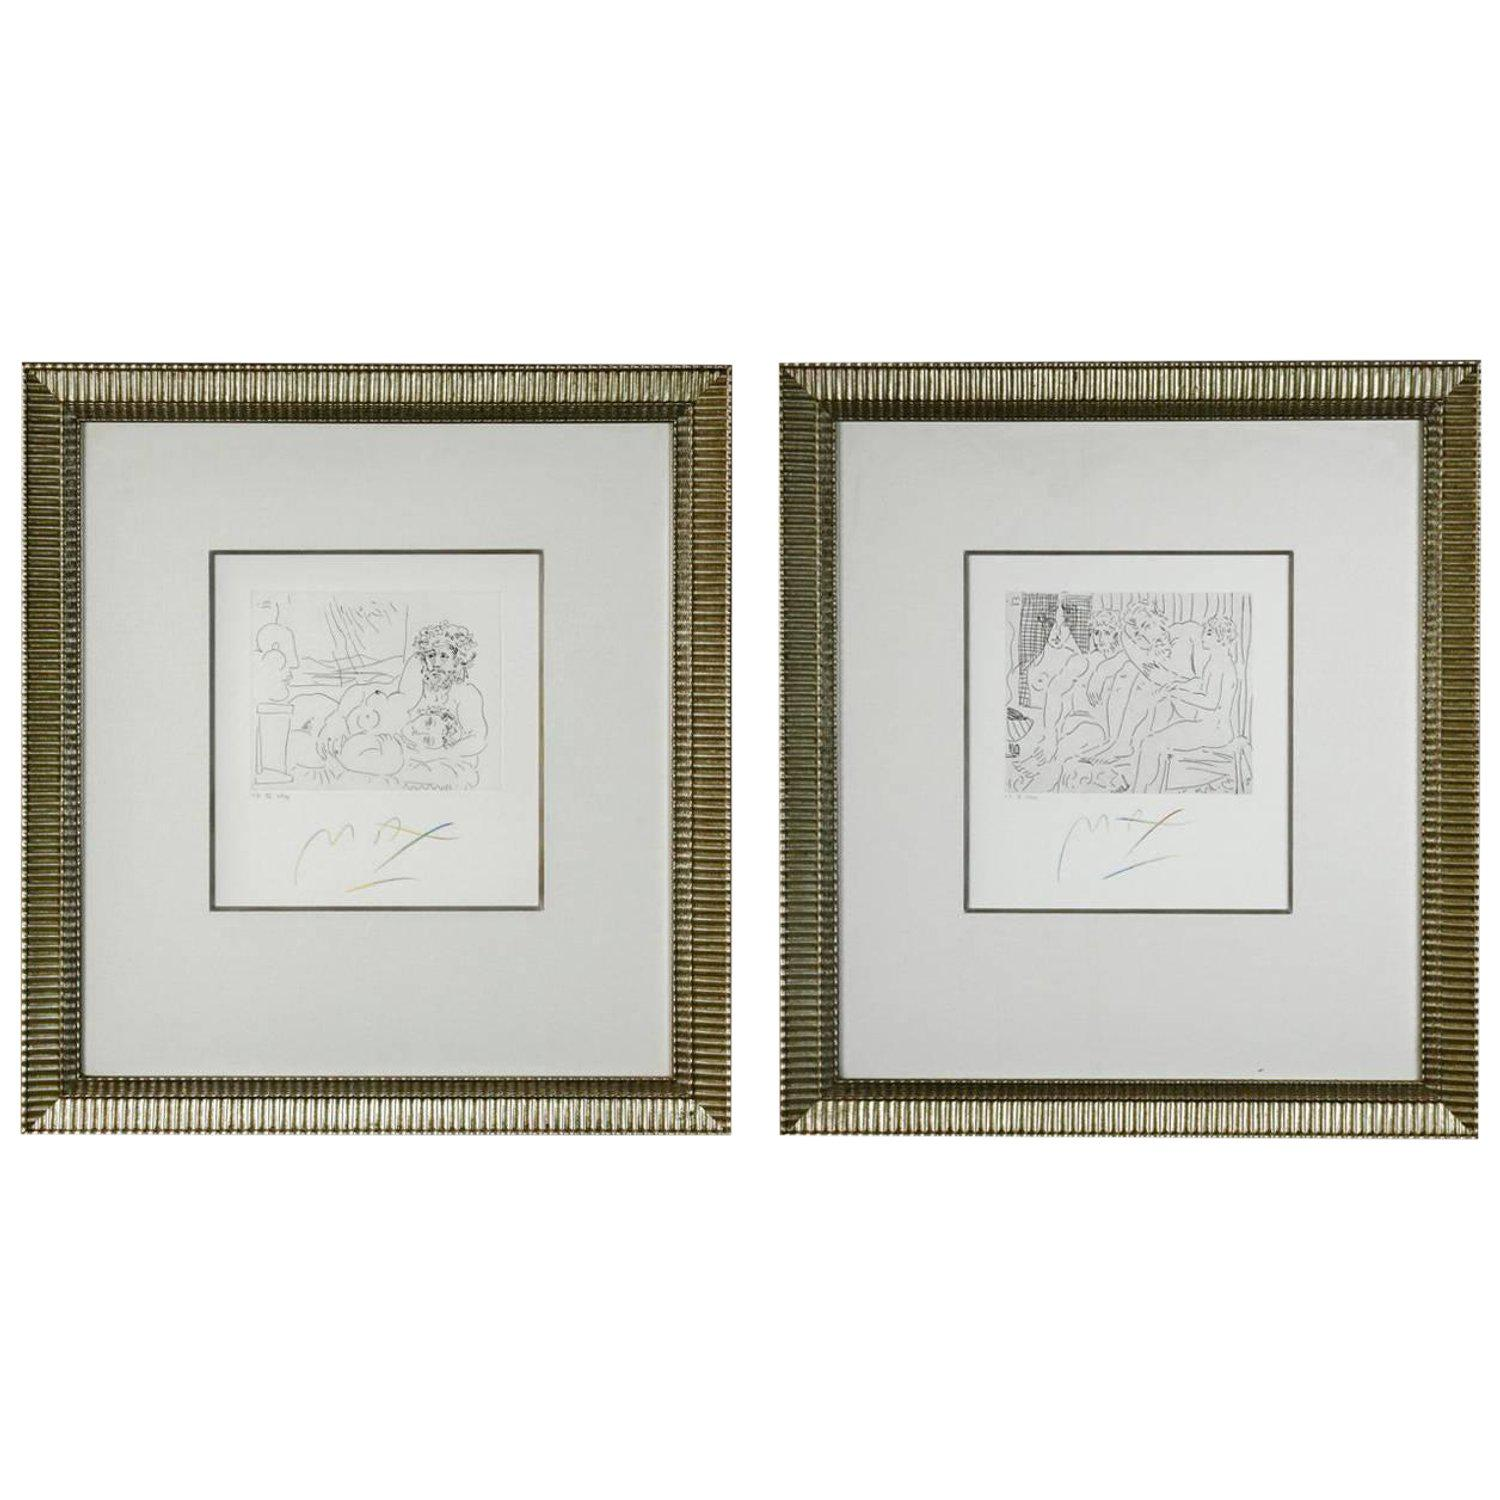 Pair of Etchings V. 3. IX and XII